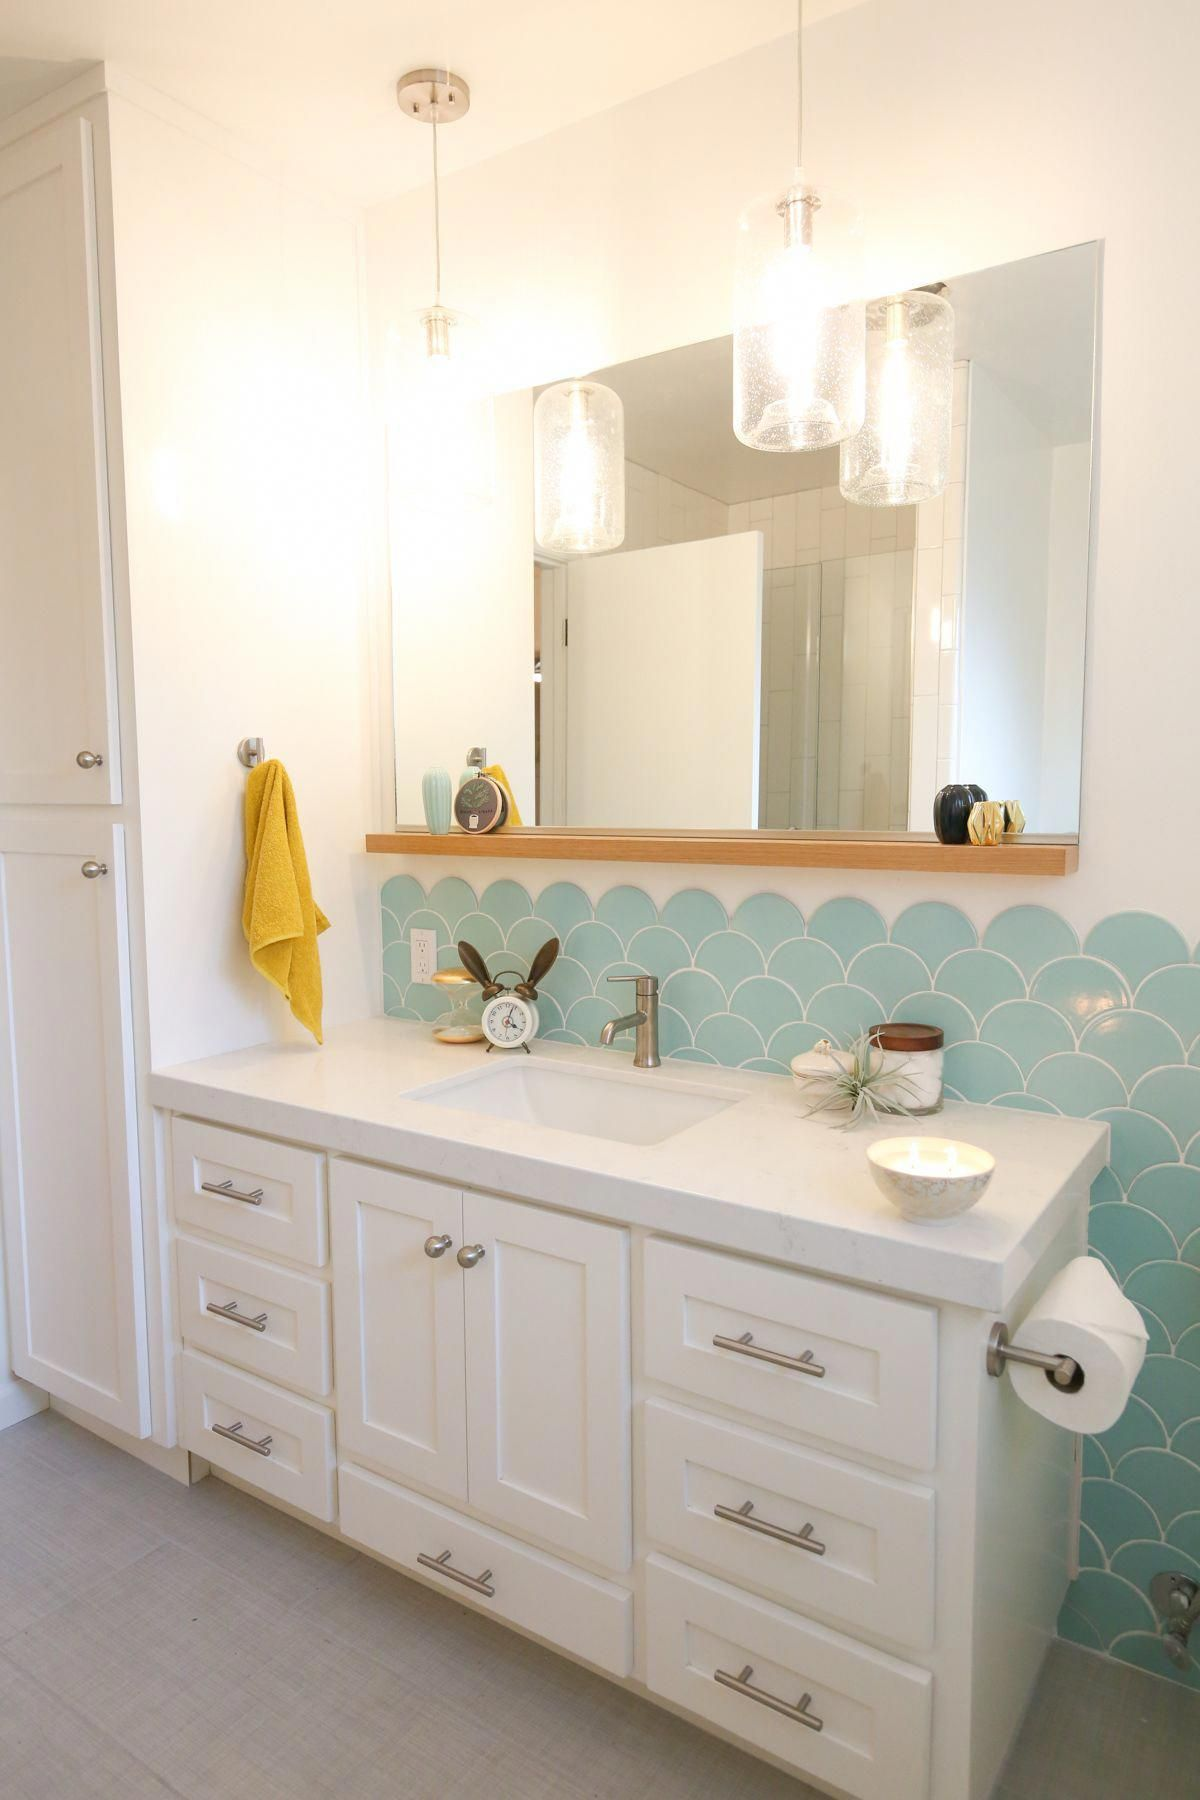 5 steps to clean your roof kid bathroom decor kids